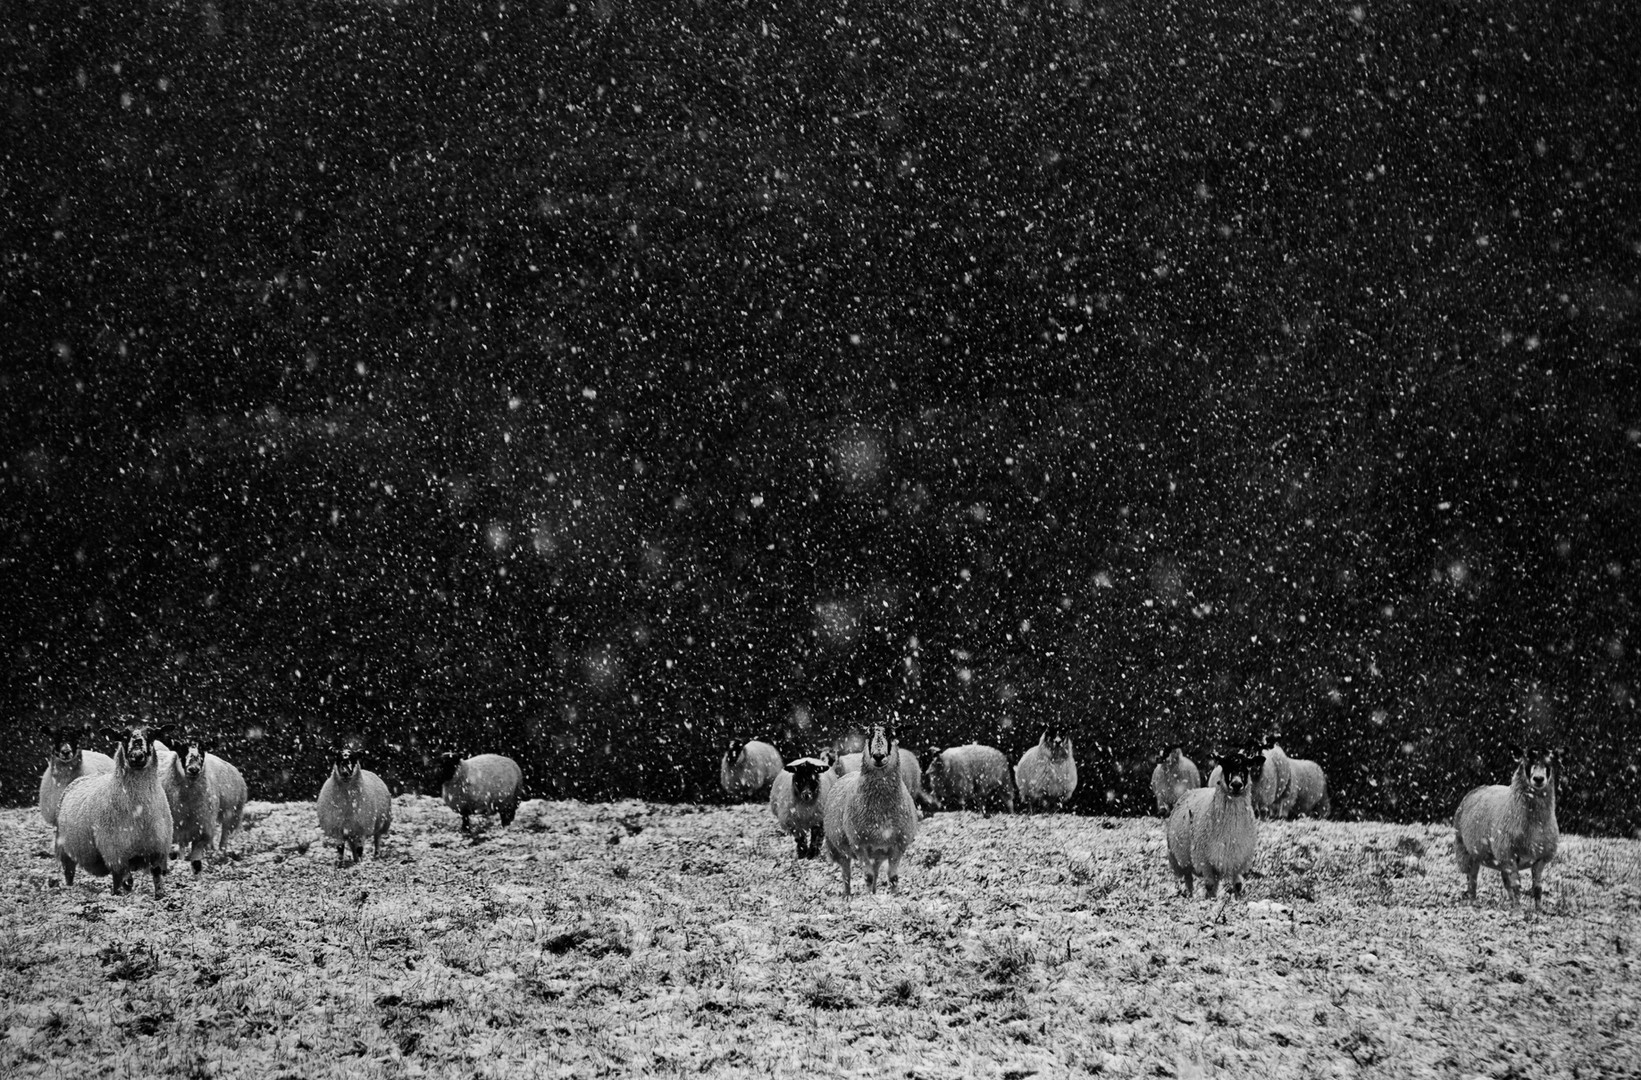 Moon Sheep